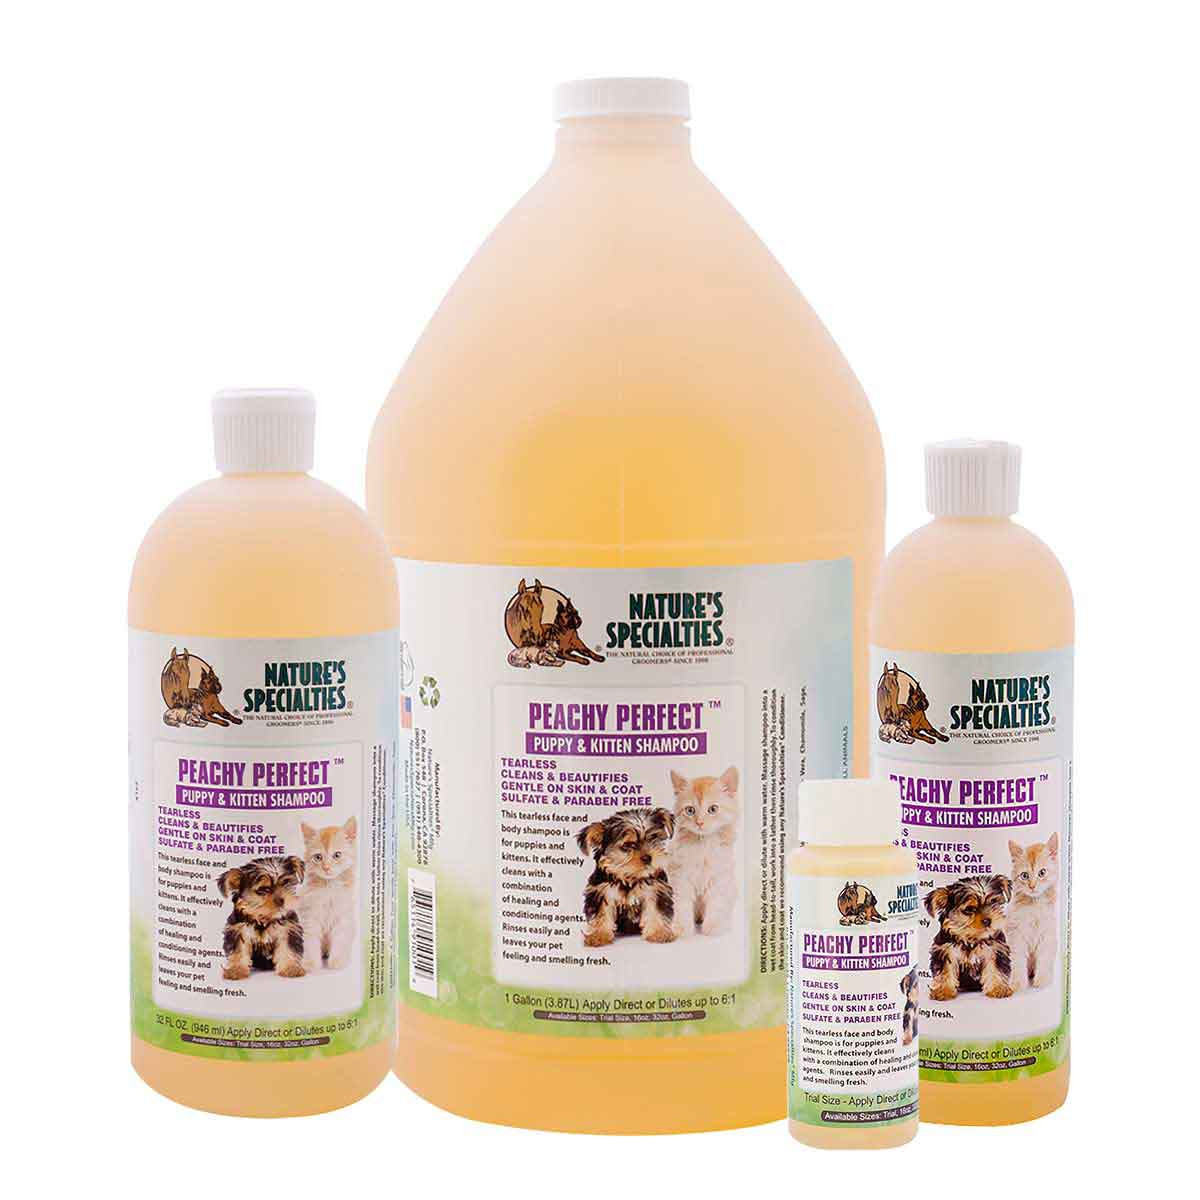 Nature's Specialties Peachy Perfect Puppy and Kitten Shampoo